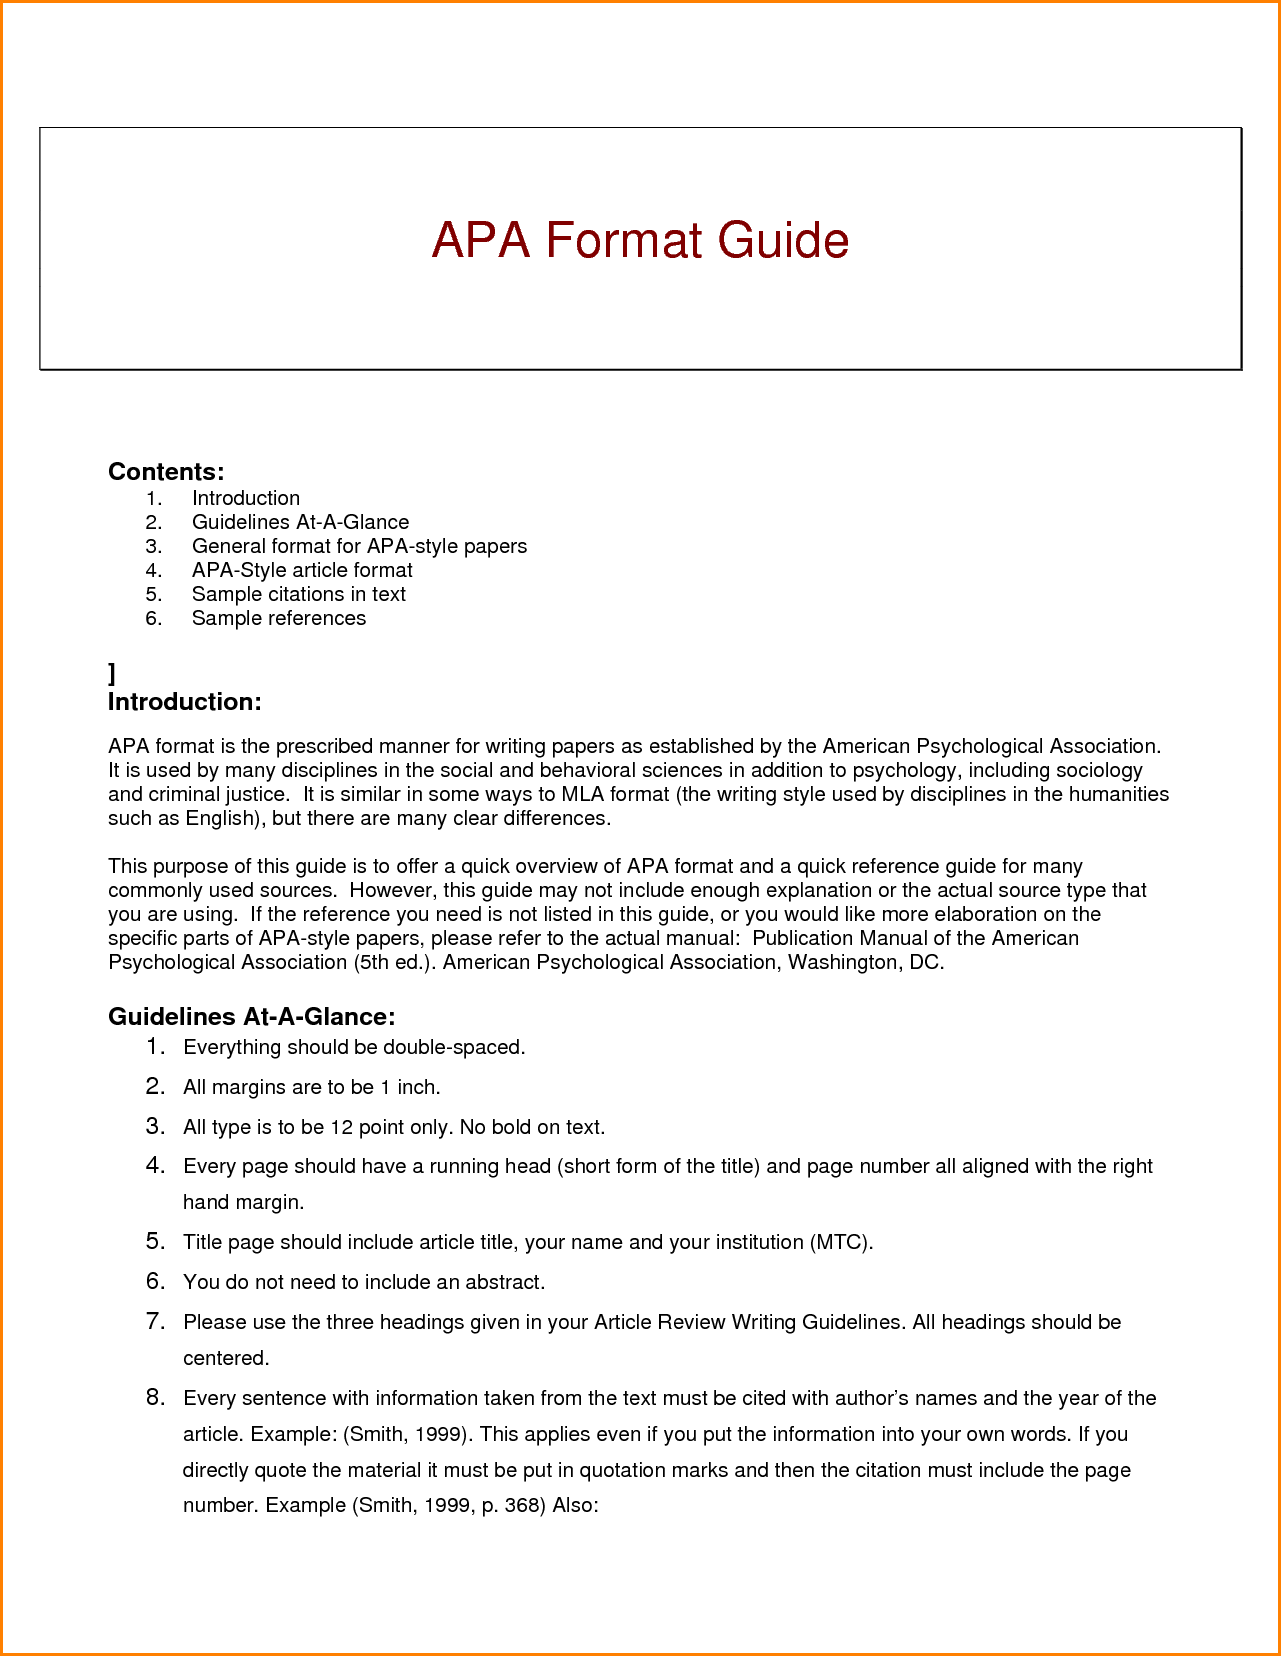 007 Research Paper Citing Papers Apa Breathtaking Sources In Paragraph Citation Full